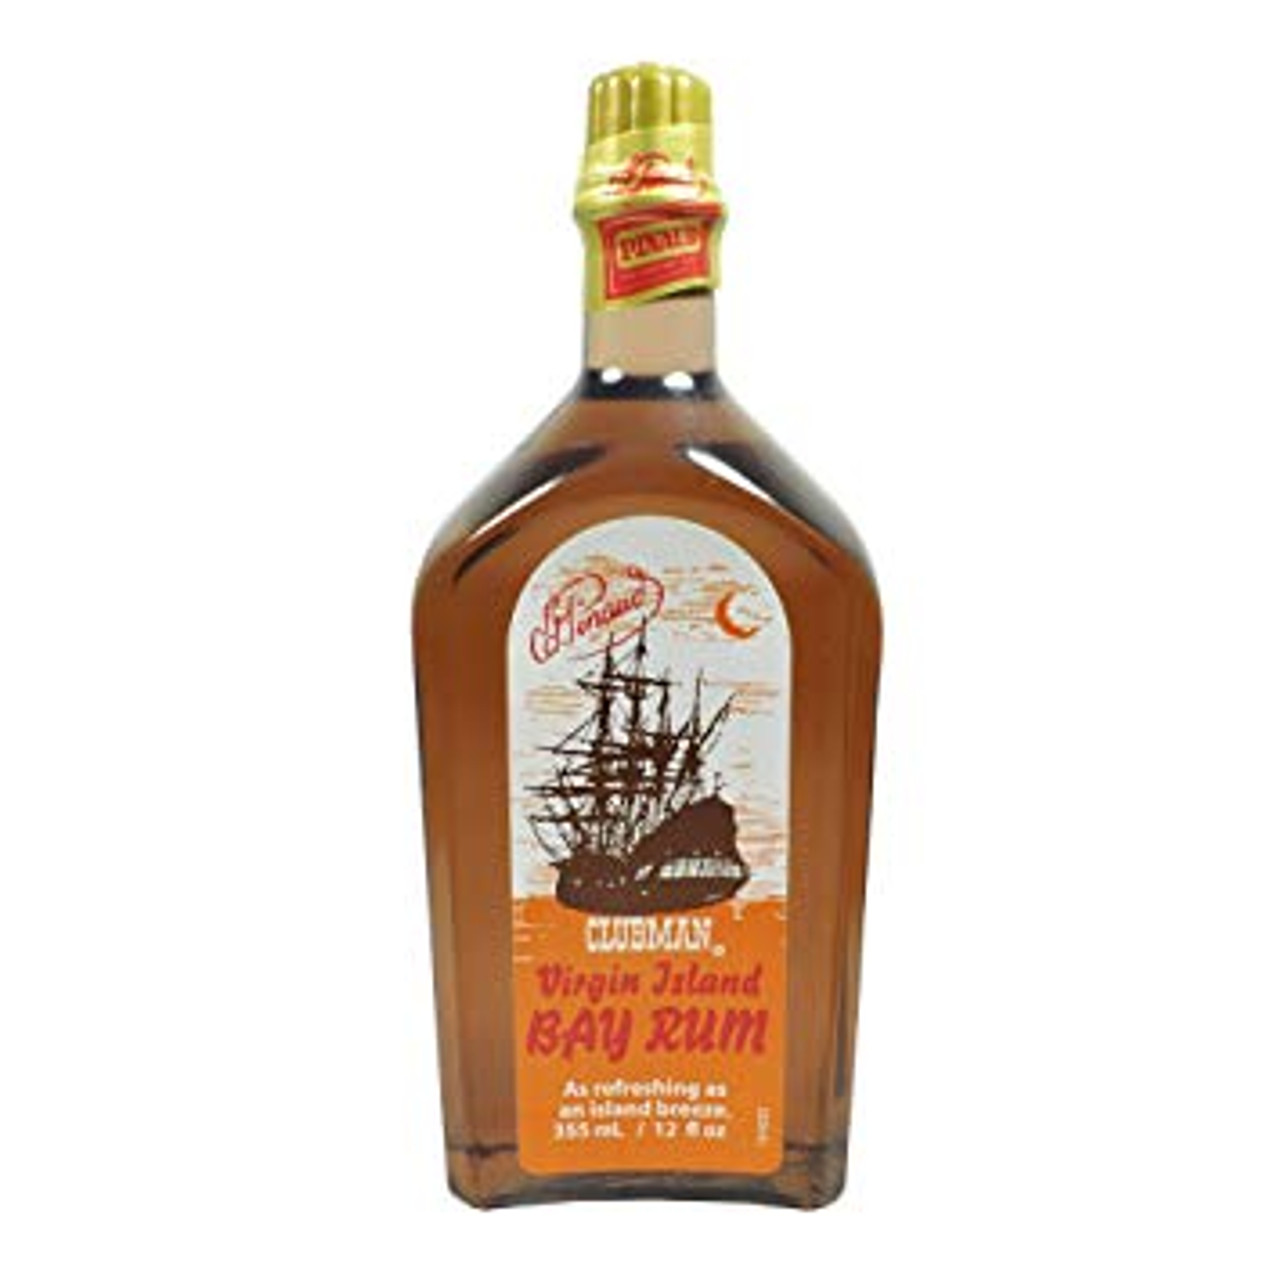 Clubman Virgin Island Bay Rum 12oz